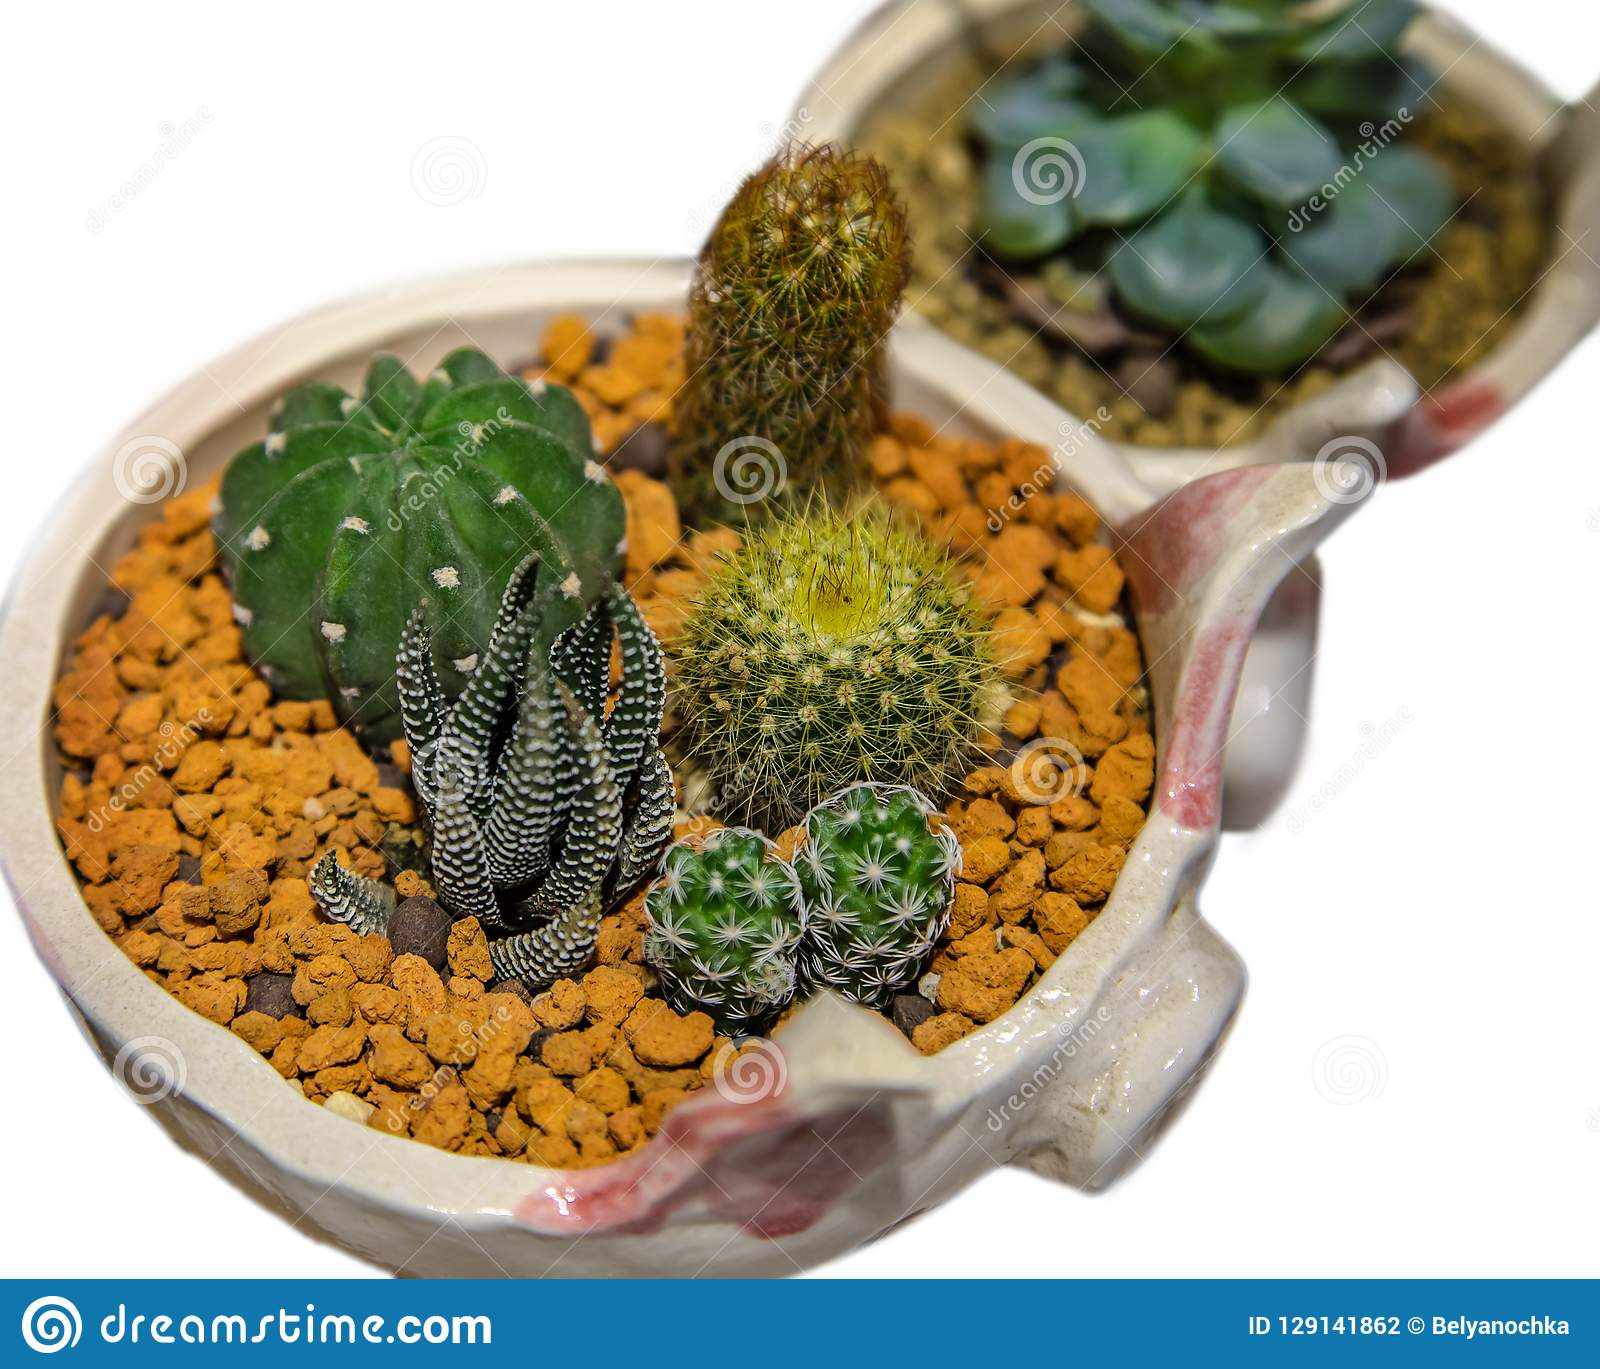 Collection Of Small Cactus Succulents In Pot Stock Photo Image Of Home Design 129141862